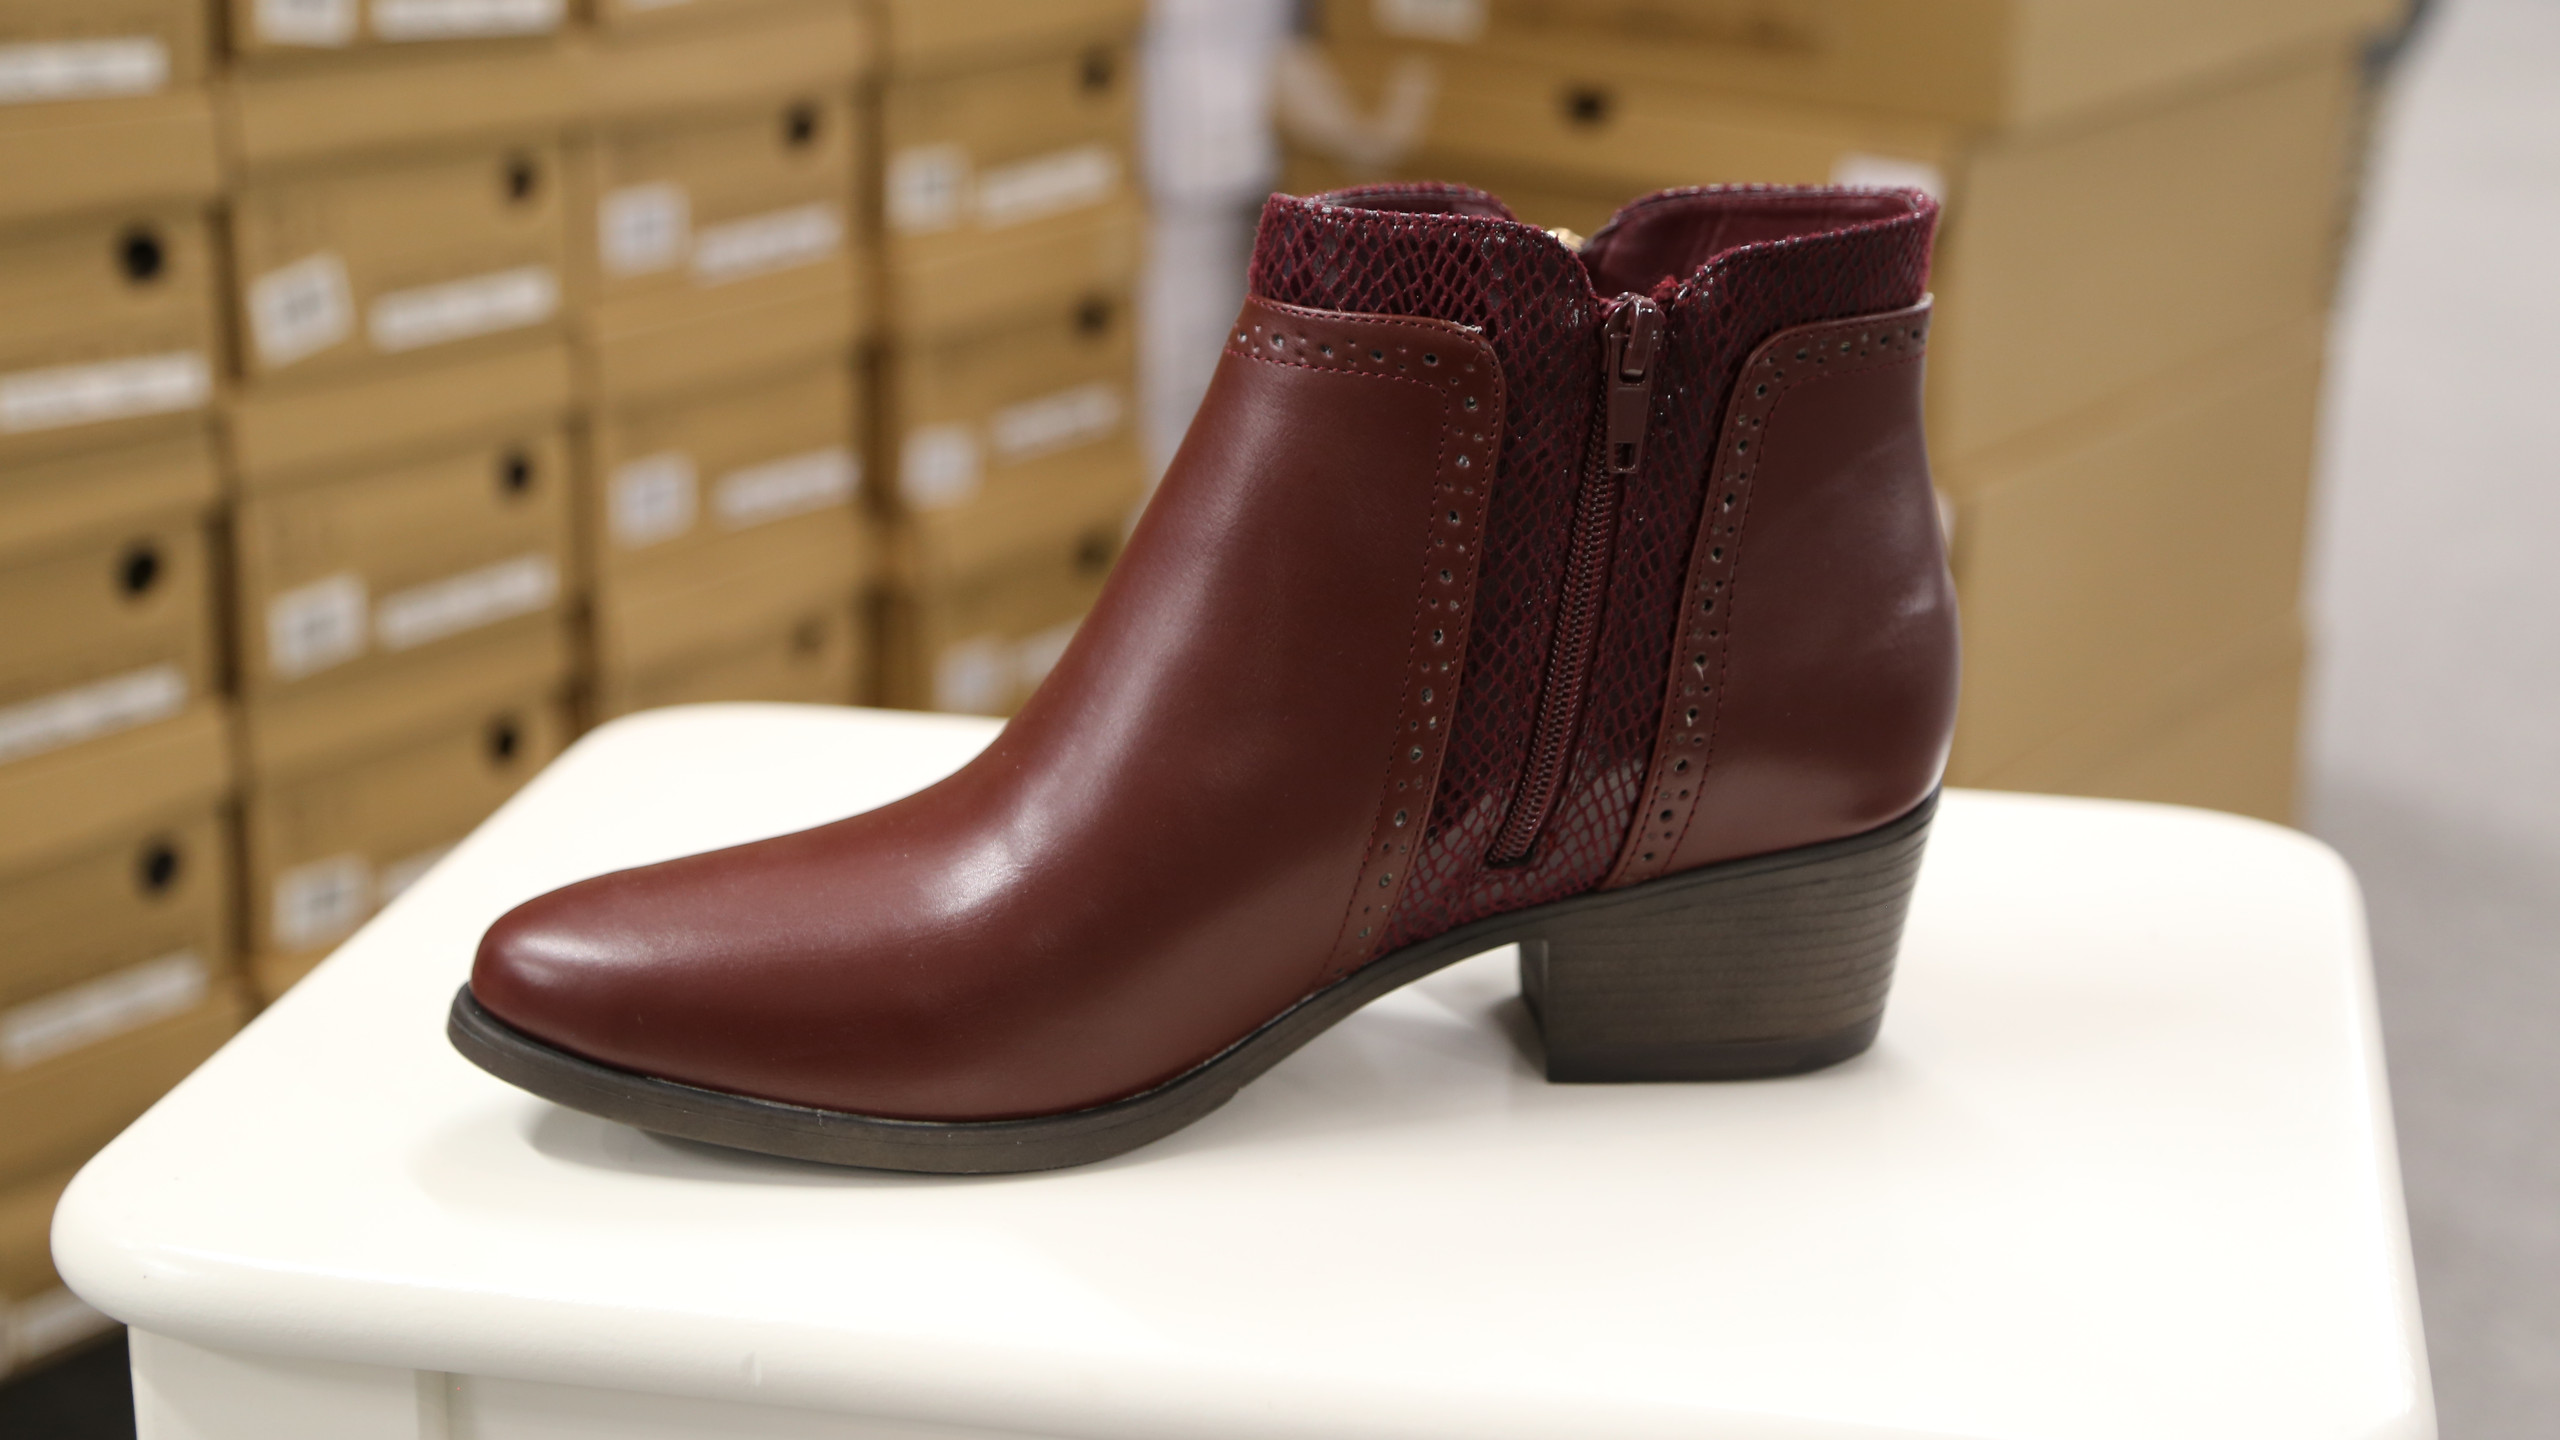 Boots on sale at Inspirations